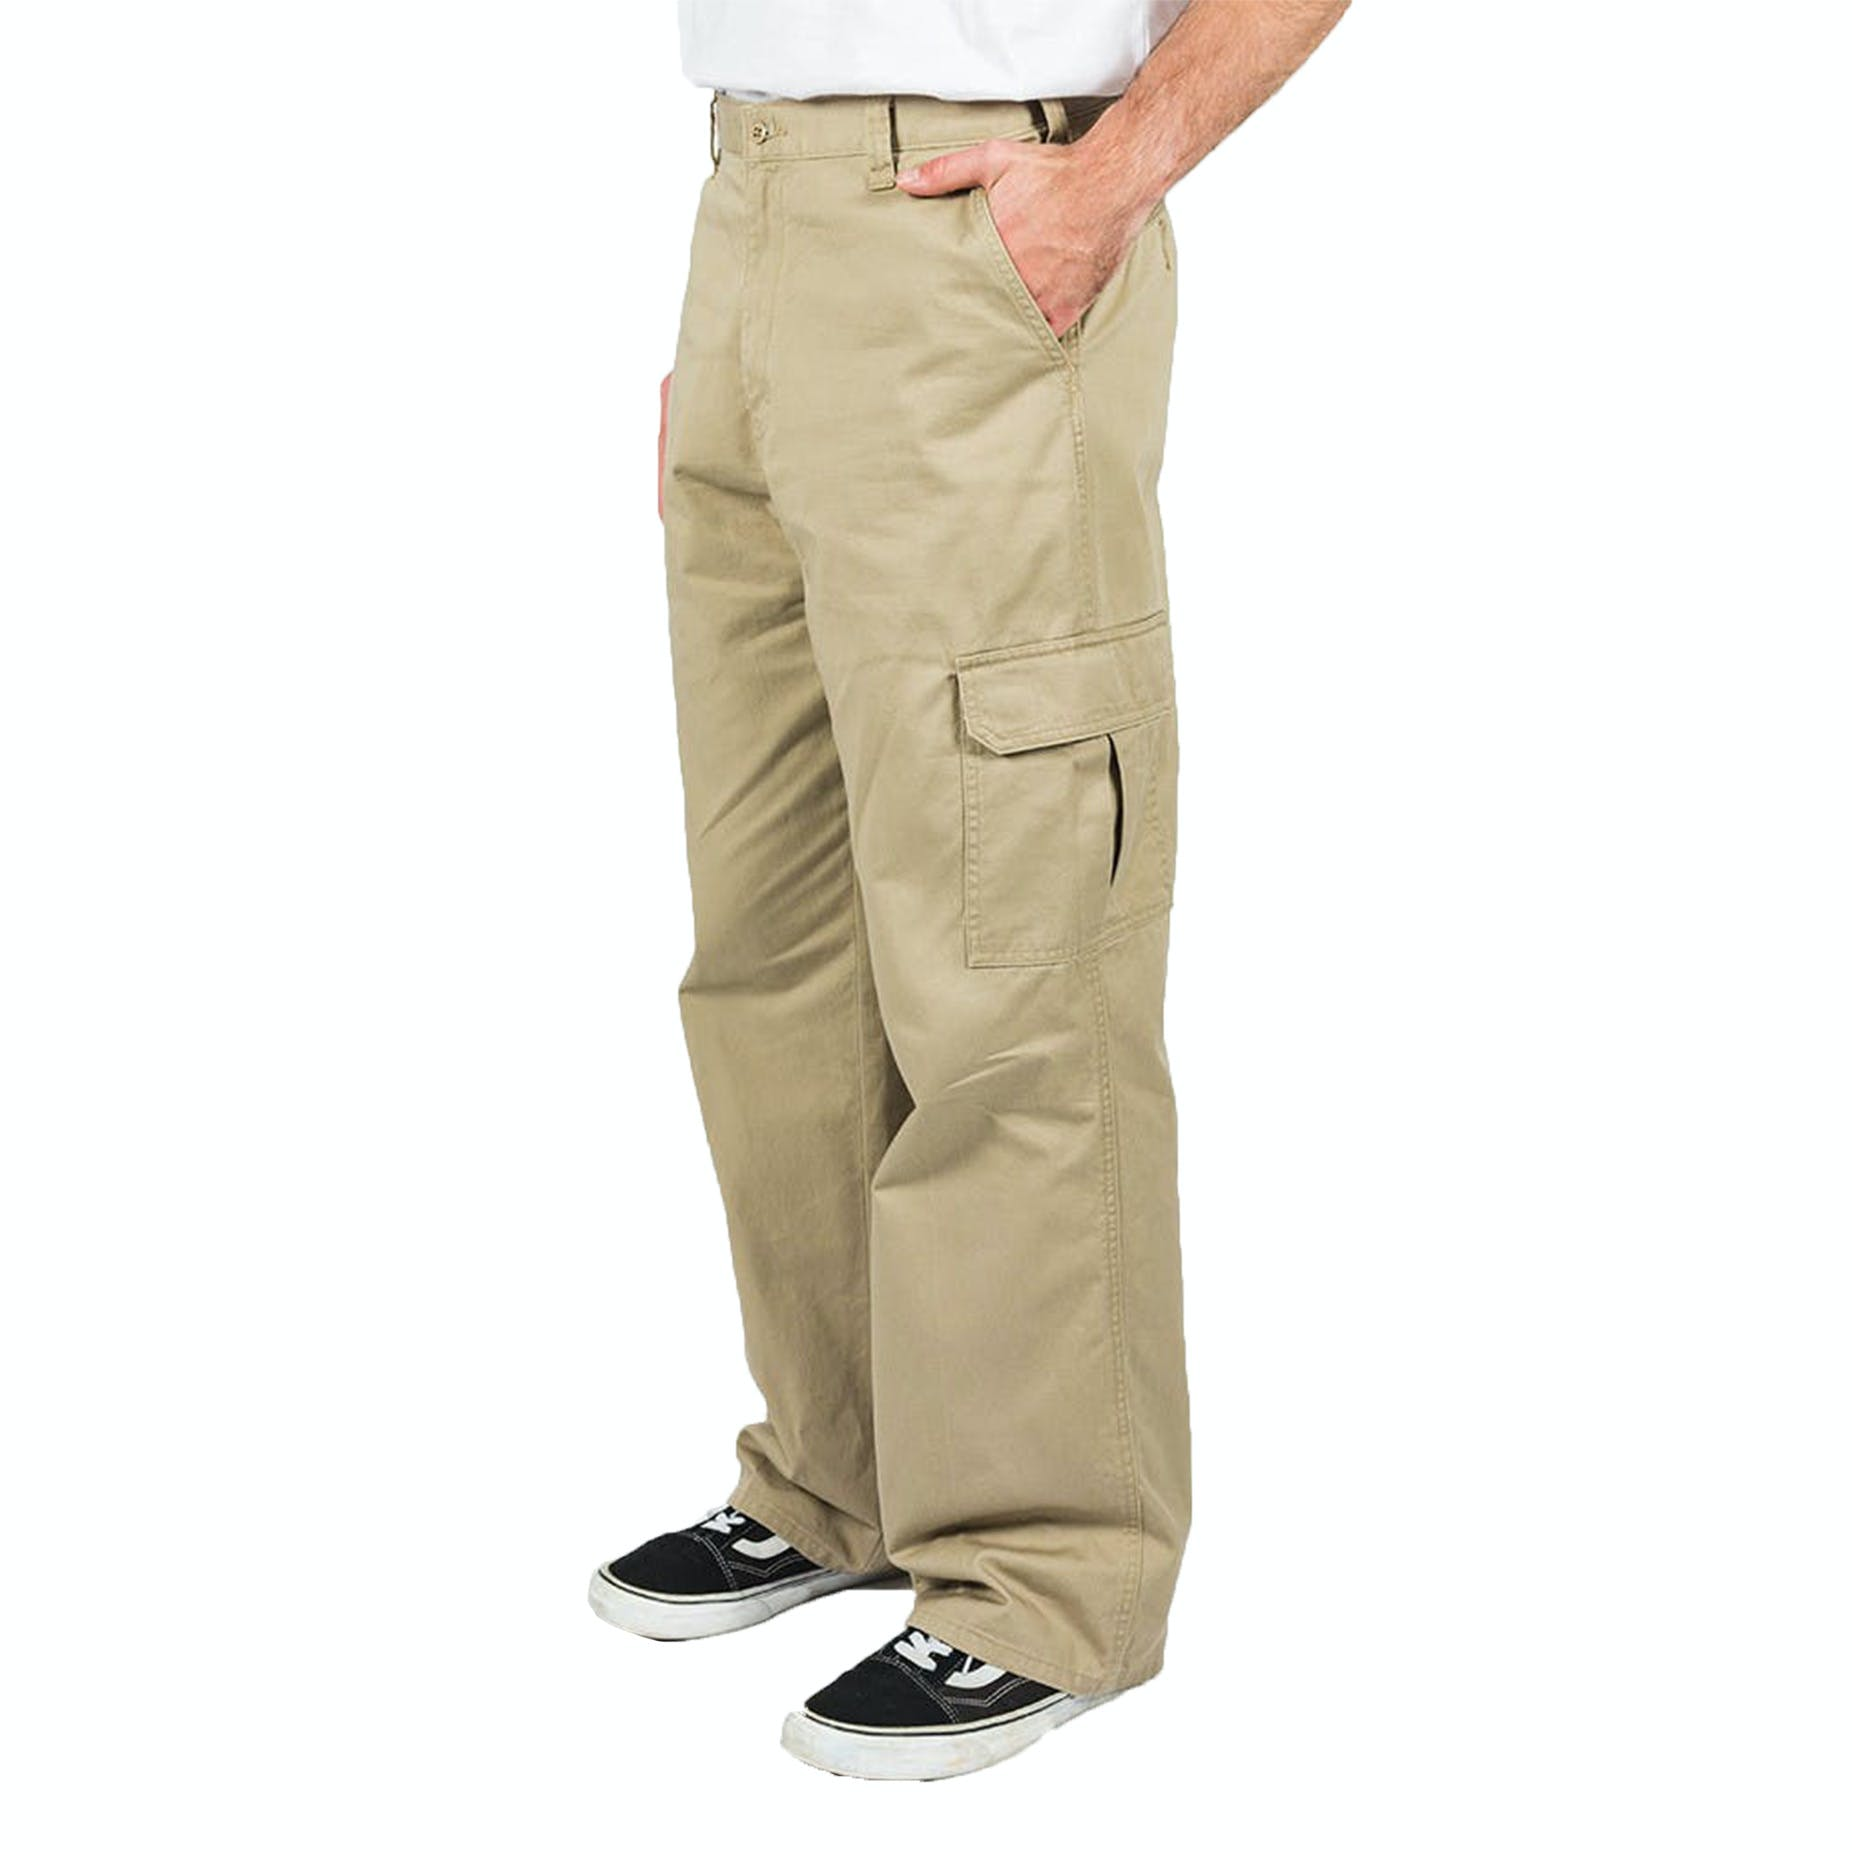 select for authentic special section enjoy cheap price Dickies Cargo Pant - Rinsed Khaki